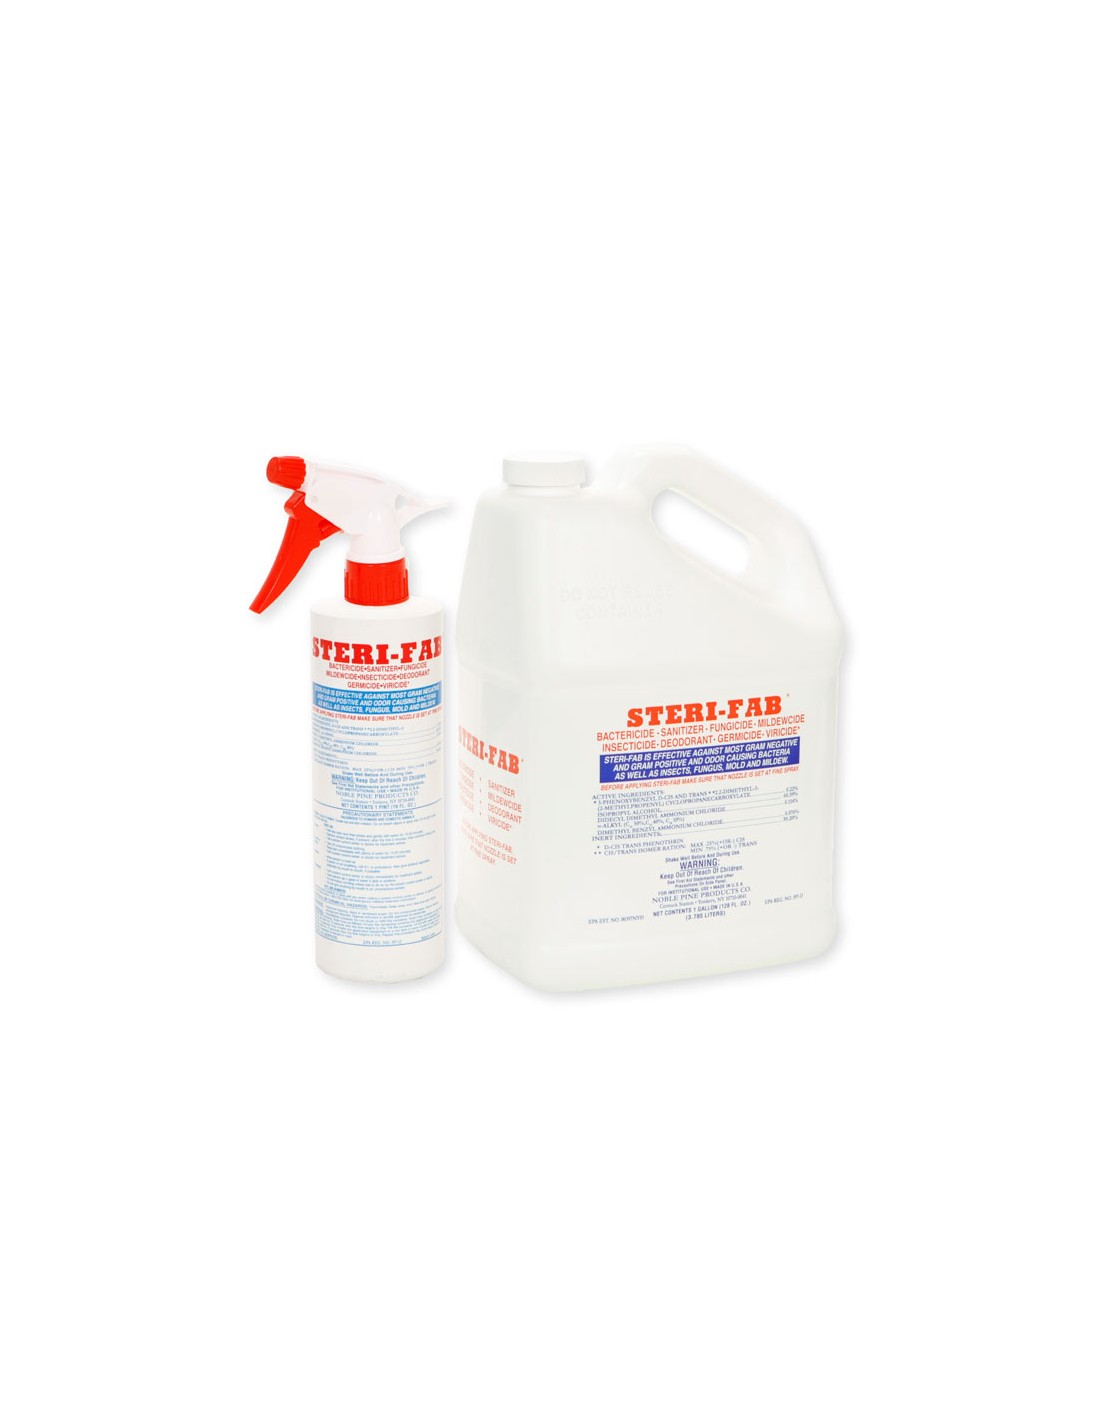 Is steri Fab safe to breath